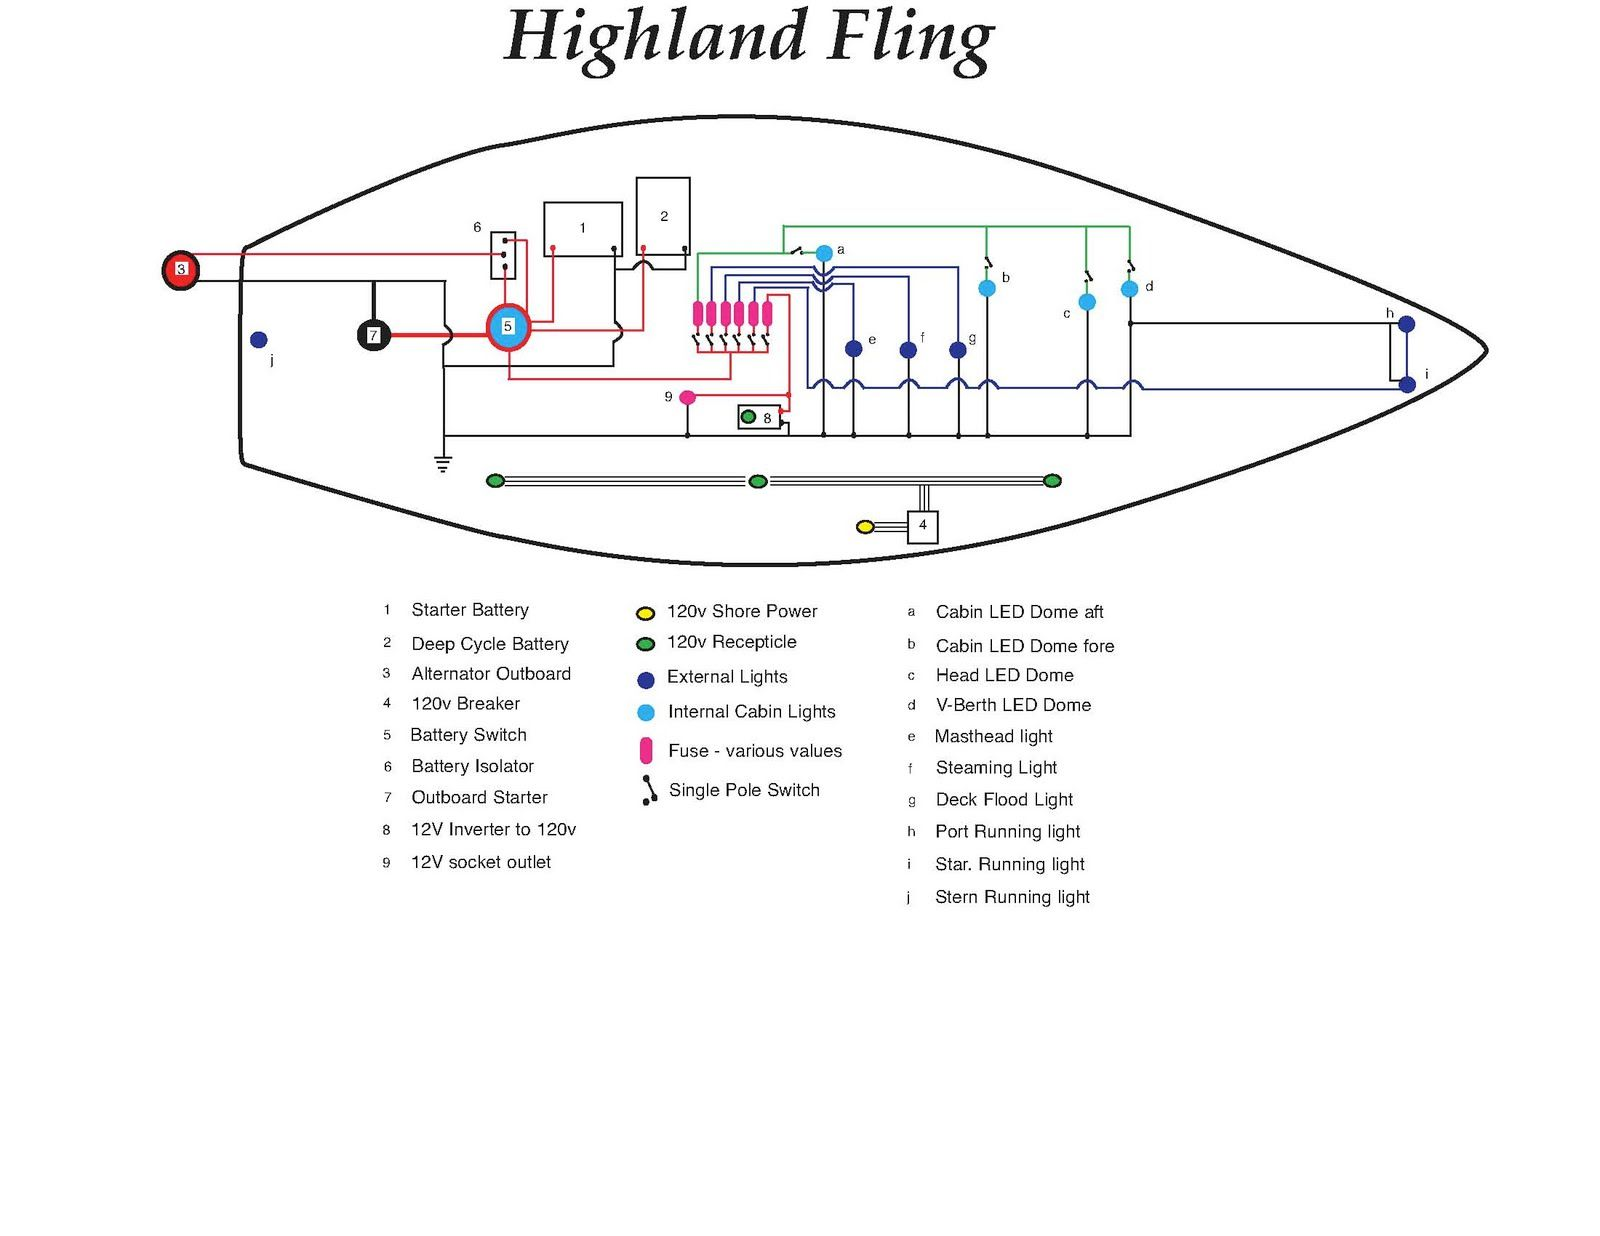 Marine wiring diagrams sailboat mast dolgular highland fling my grampian 26 sailboat wiring diagram pooptronica